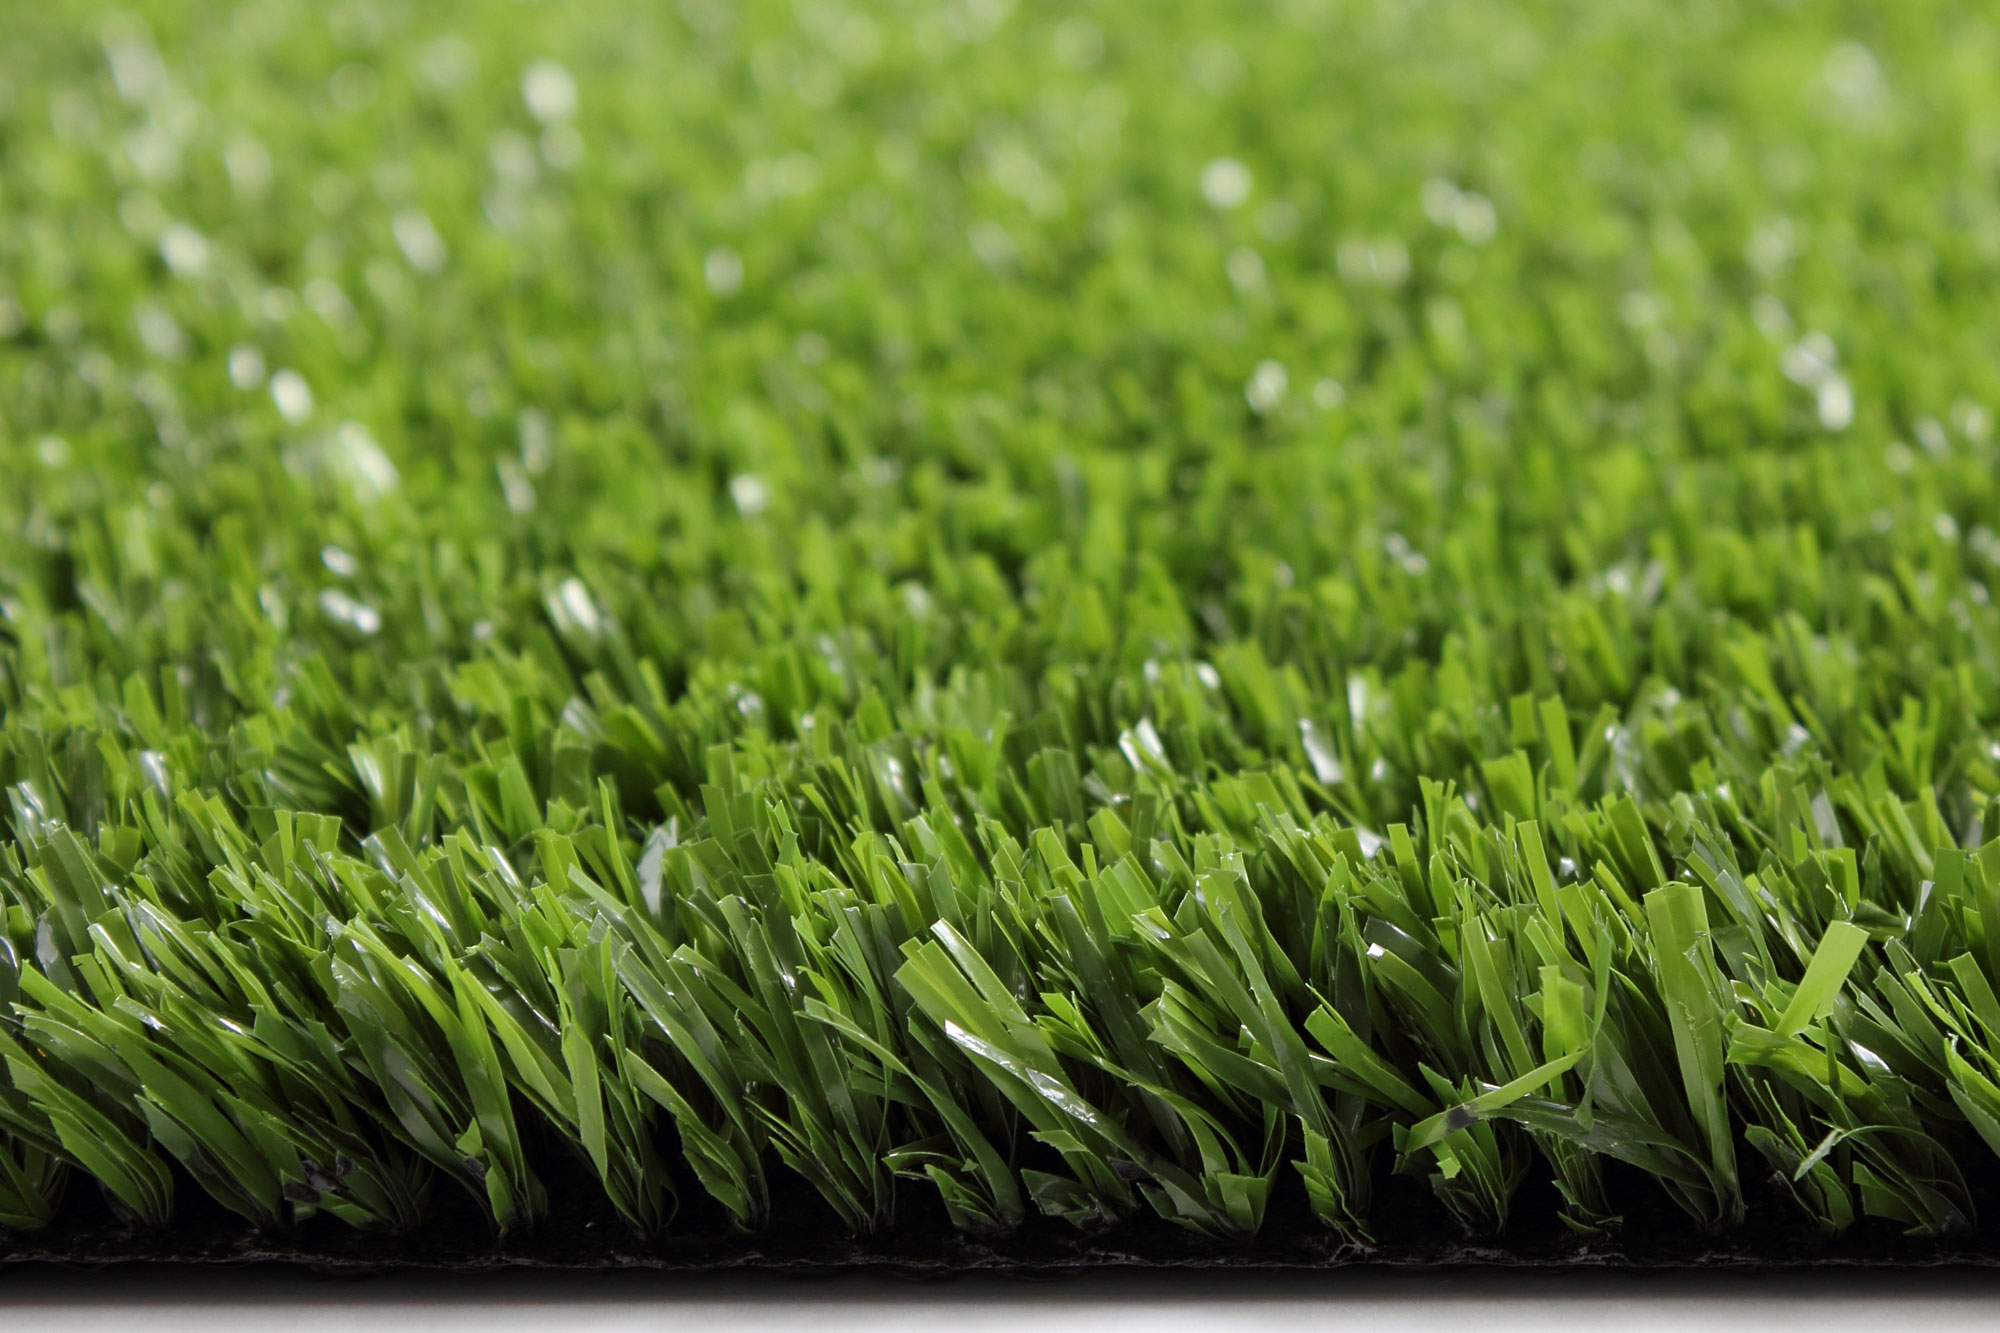 Luxury Artificial Grass Products For Quality Lawns By